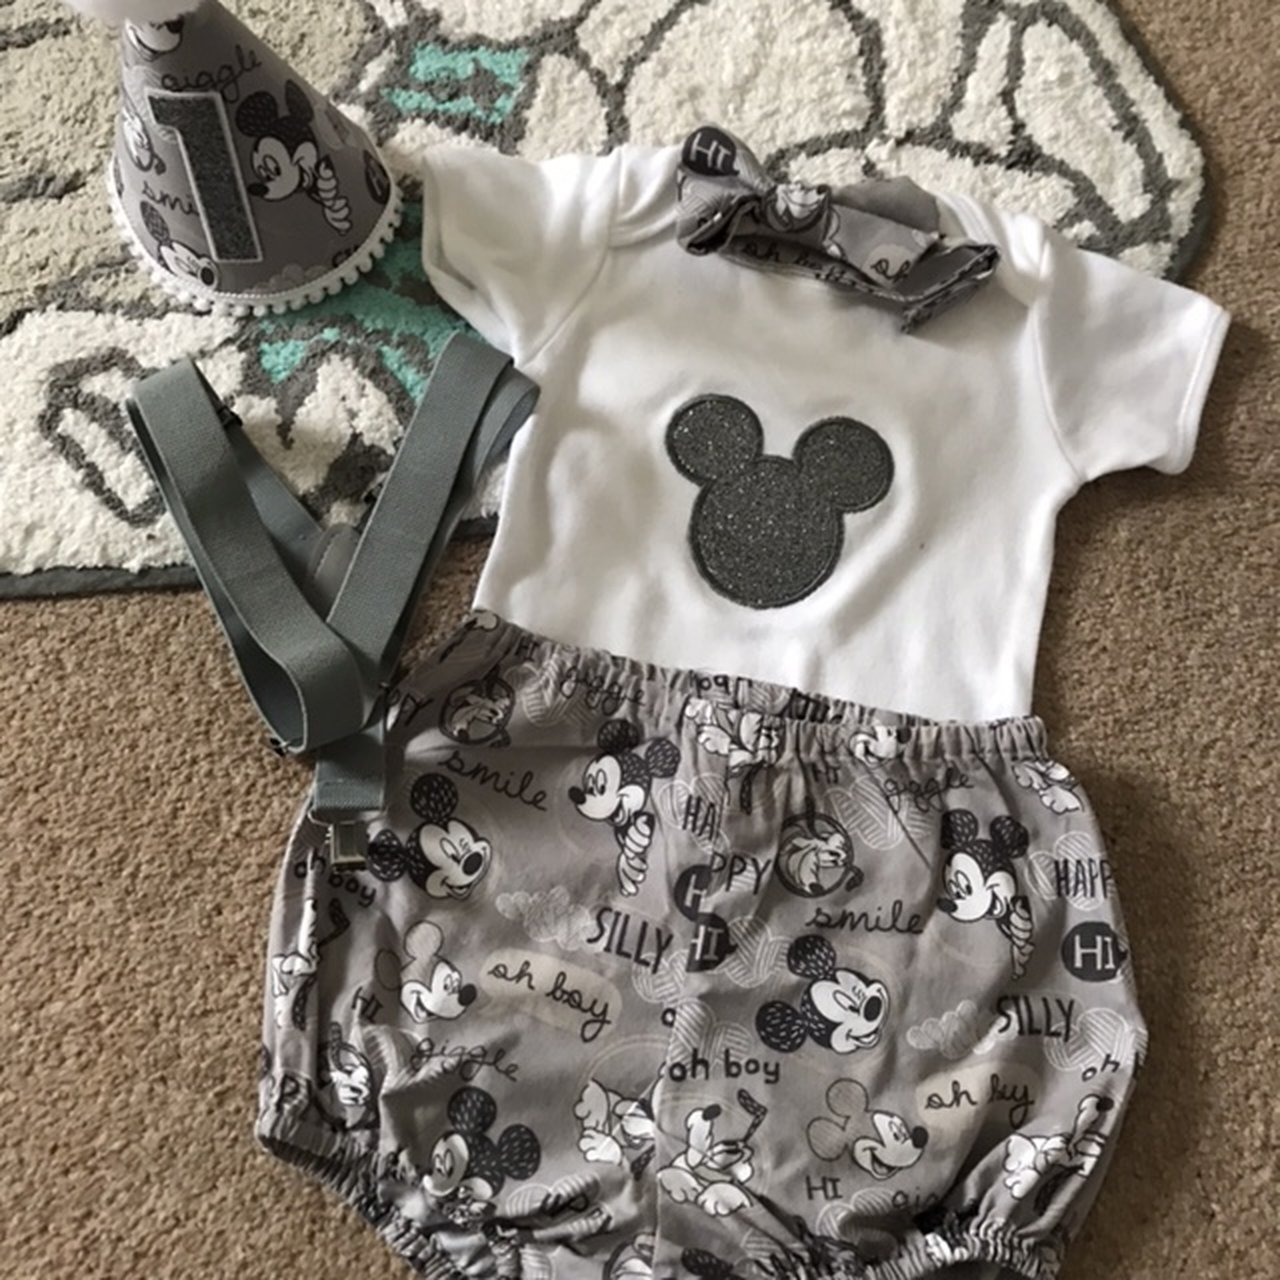 Sammisld 6 Months Ago Newark United Kingdom Mickey Mouse Cake Smash Outfit 1st Birthday